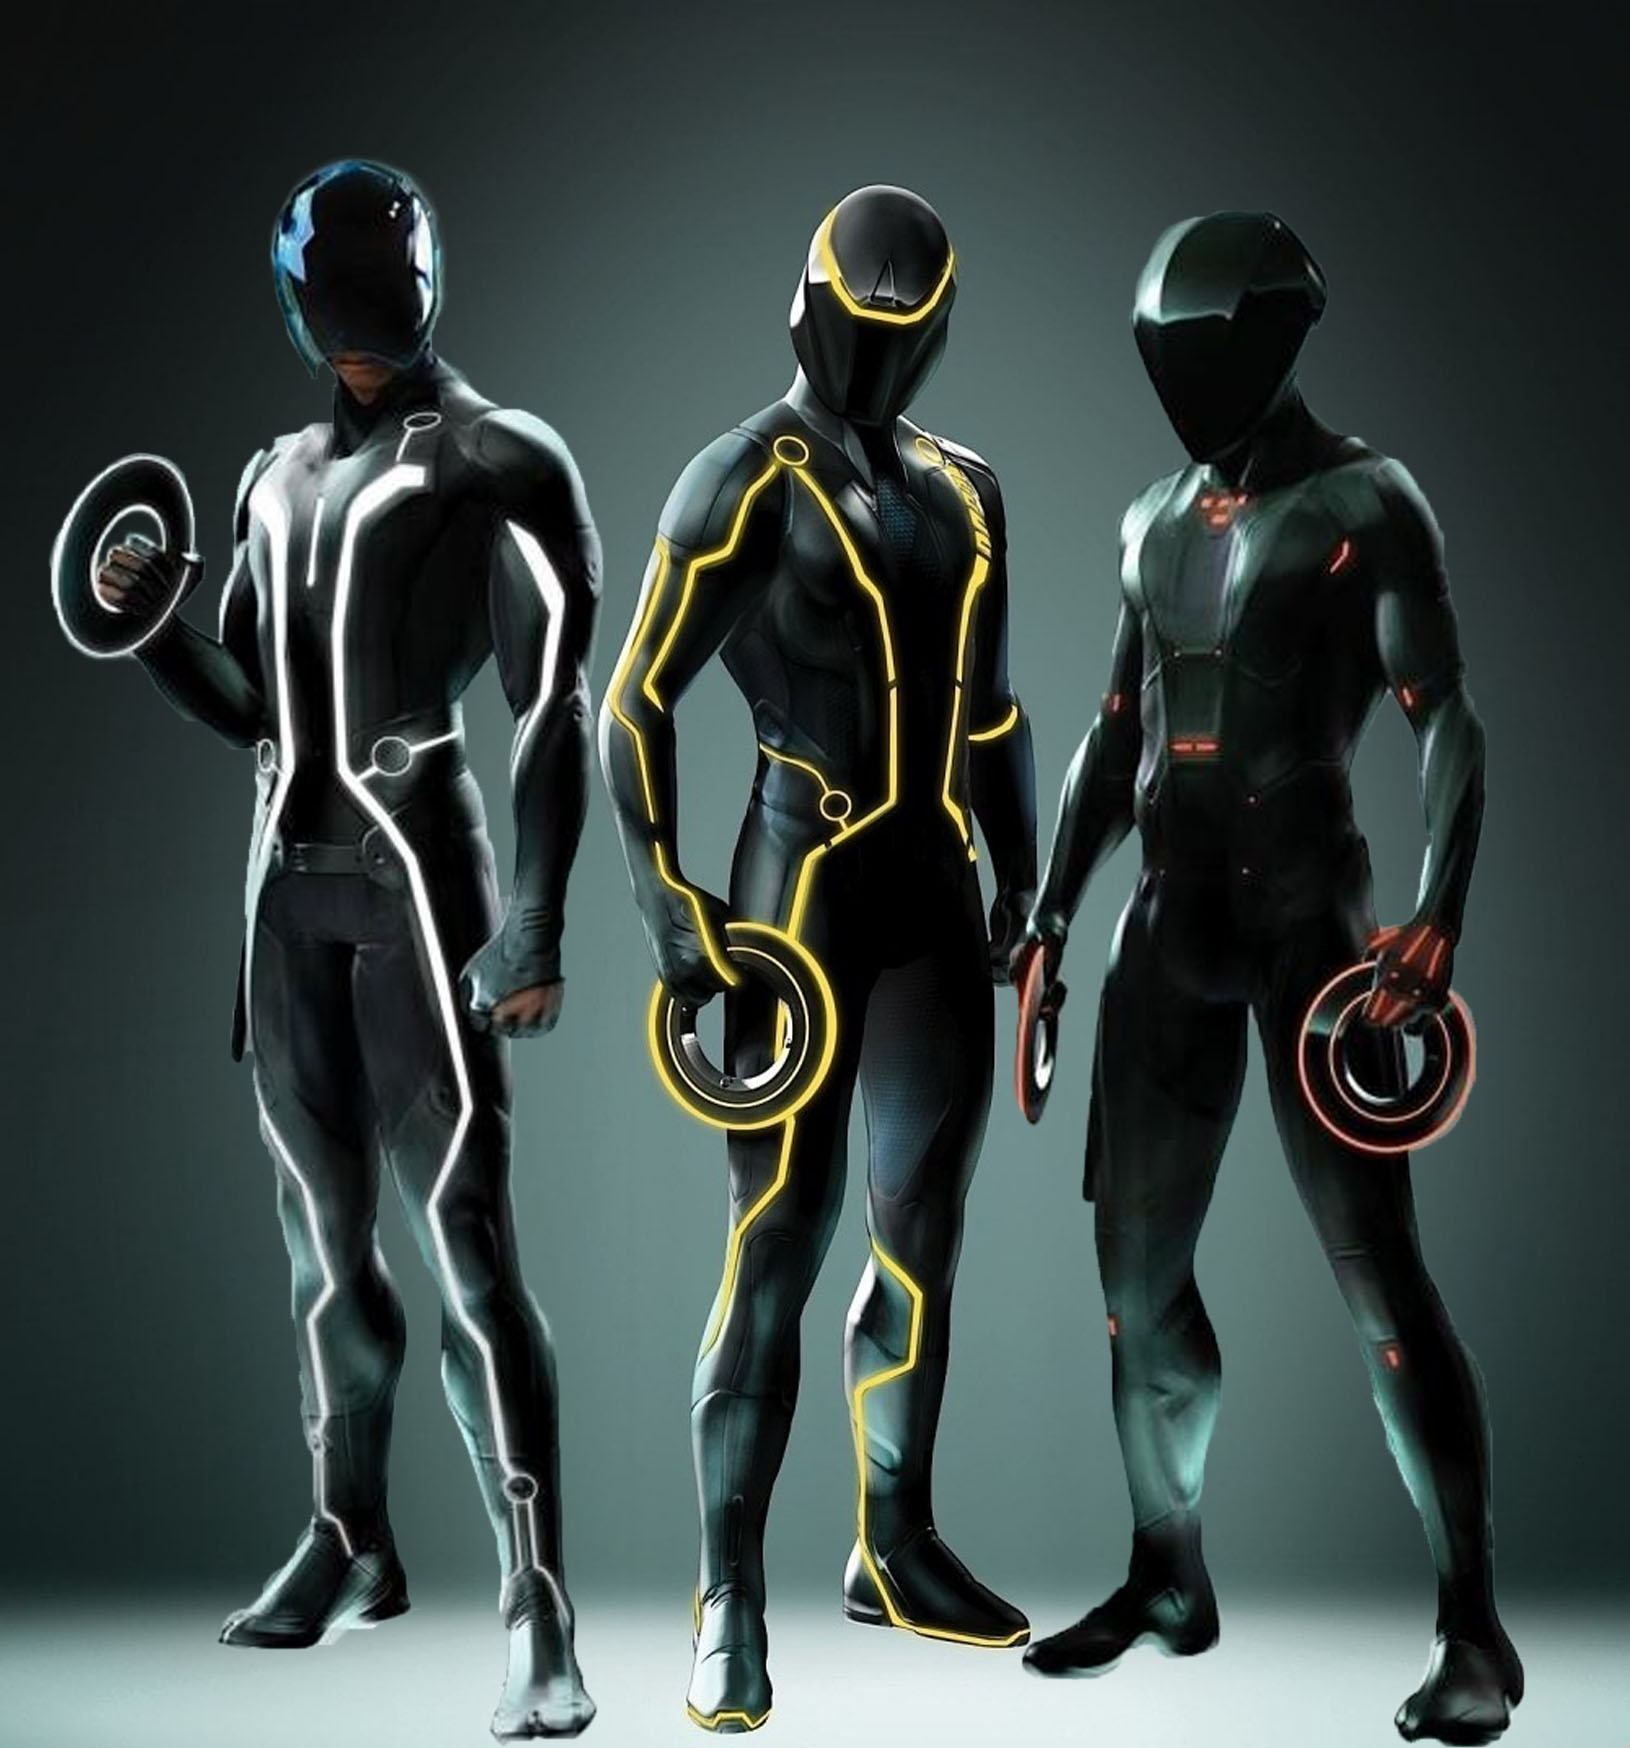 Tron Legacy Writings Of A Not So Typical Writer